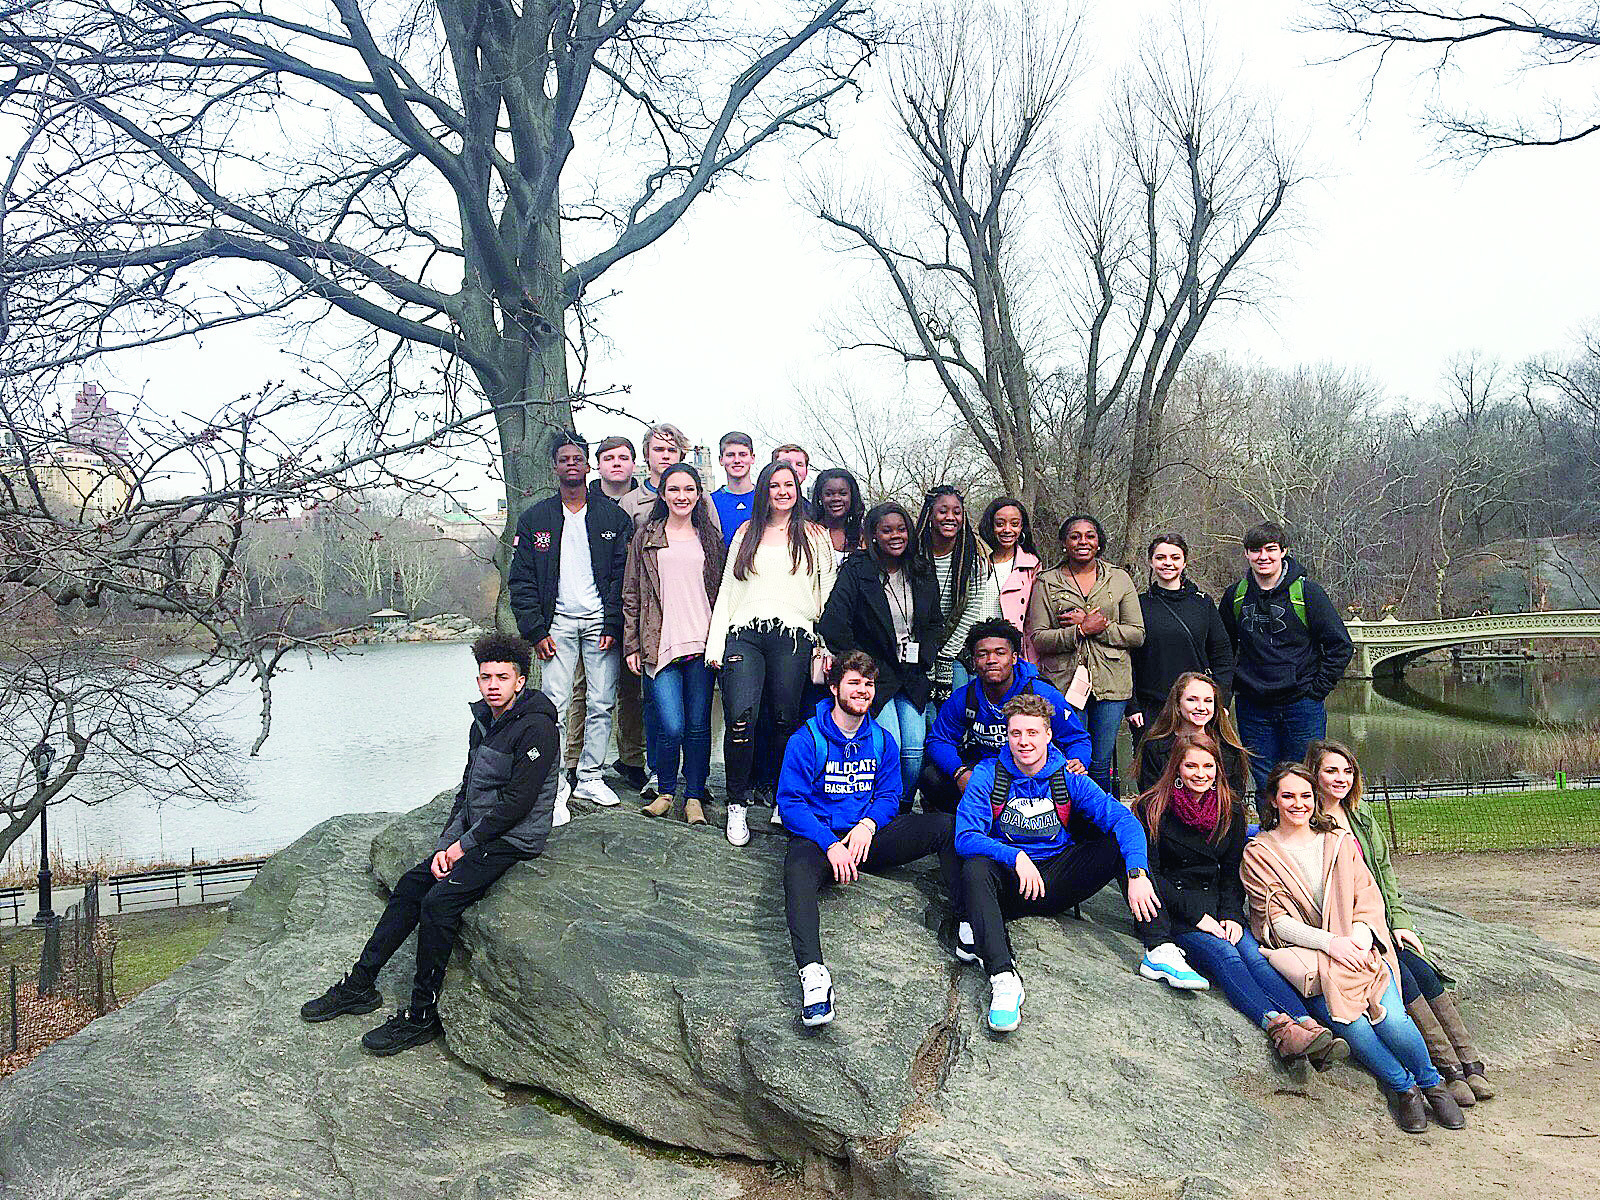 Pictured are Oakman High School SGA students at Central Park in New York.